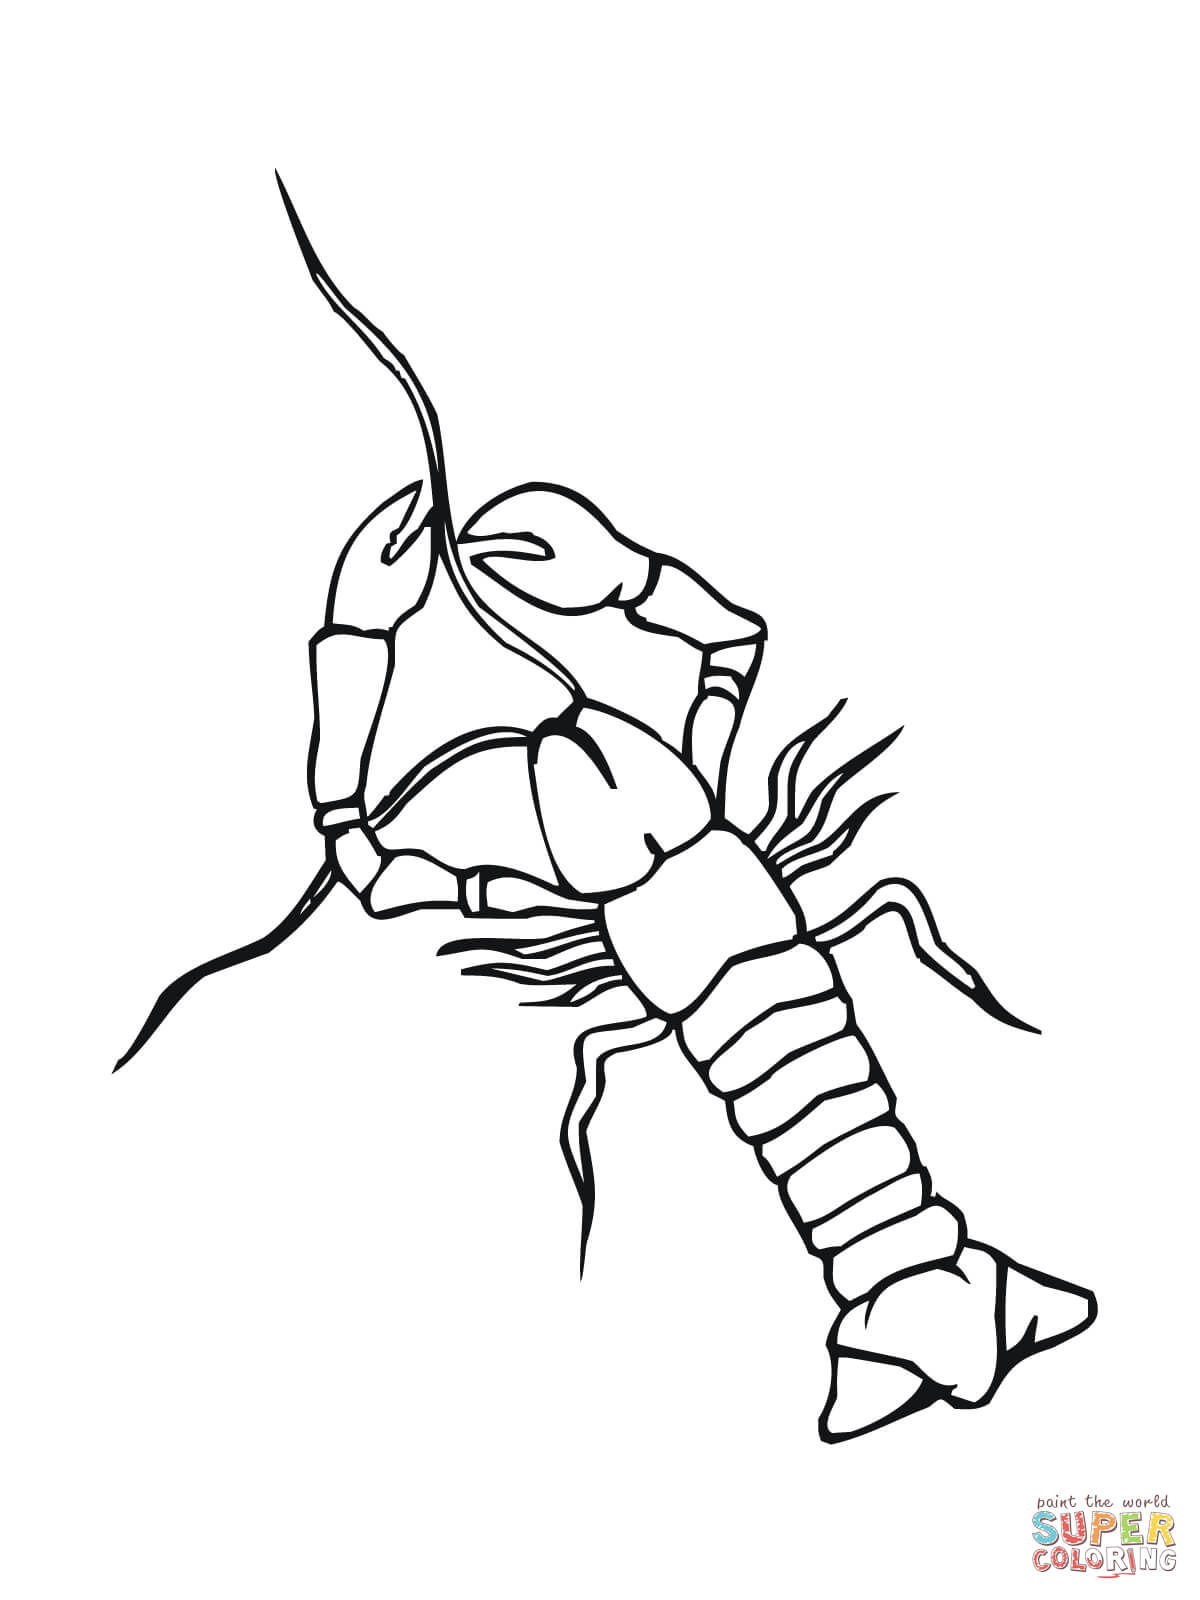 Crawfish Coloring Page Free Printable Coloring Pages